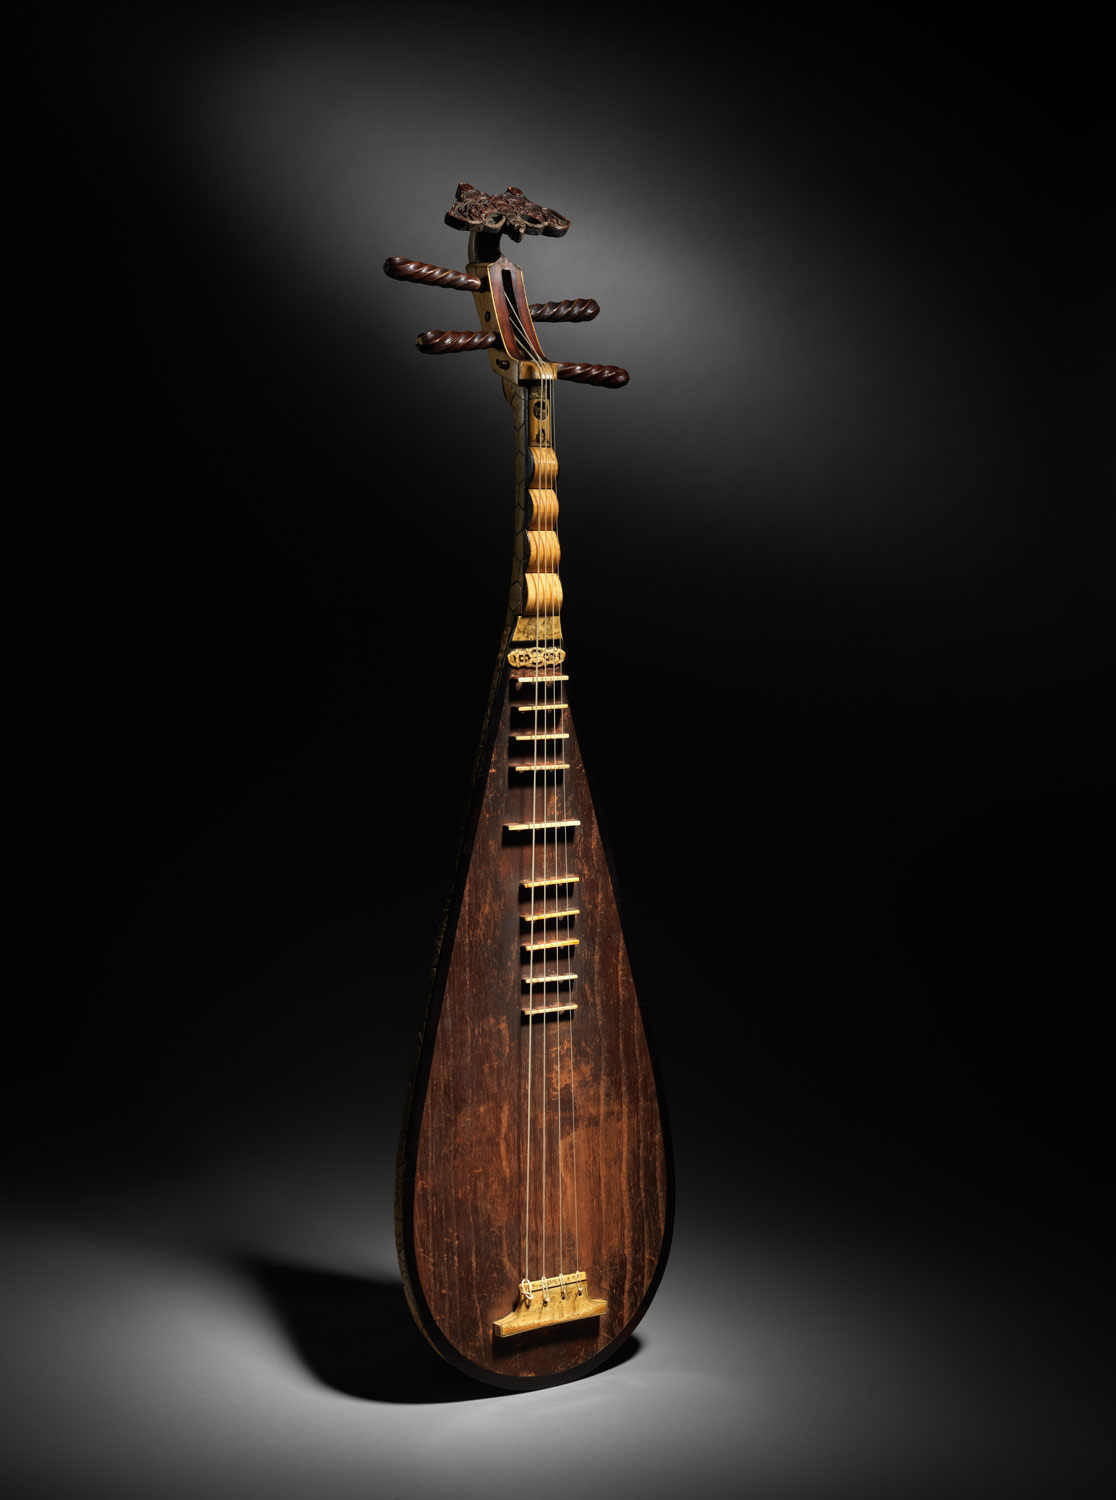 The Pipa    / A lute with four strings that dates back numerous centuries as a traditional and performance instrument.  / Tuning for the four strings are ADEA, from bottom to top. Notation is read in bass clef, with the lowest A starting at A2.  / Range is from the lowest A string (A2) to a high D in treble clef (D6).  / In order to play the Pipa, the player wears multiple plectra on their right hand, which essentially serve as picks in order to execute the many techniques attainable on this instrument:     Luen, a tremolo that can be played on multiple strings, played by all five fingers (There are multiple examples of this in the Pipa peace linked below)      Dzai, a muted note that sounds after the left hand plucks the highest string.      String bends, where the player changes the location of the finger on the left hand after plucking   / Linked below is a solo Pipa piece that demonstrates a lot of these techniques, as well as an interesting website that outlines the history and development of the instrument.   Picture courtesy of the Metropolitan Museum of Art